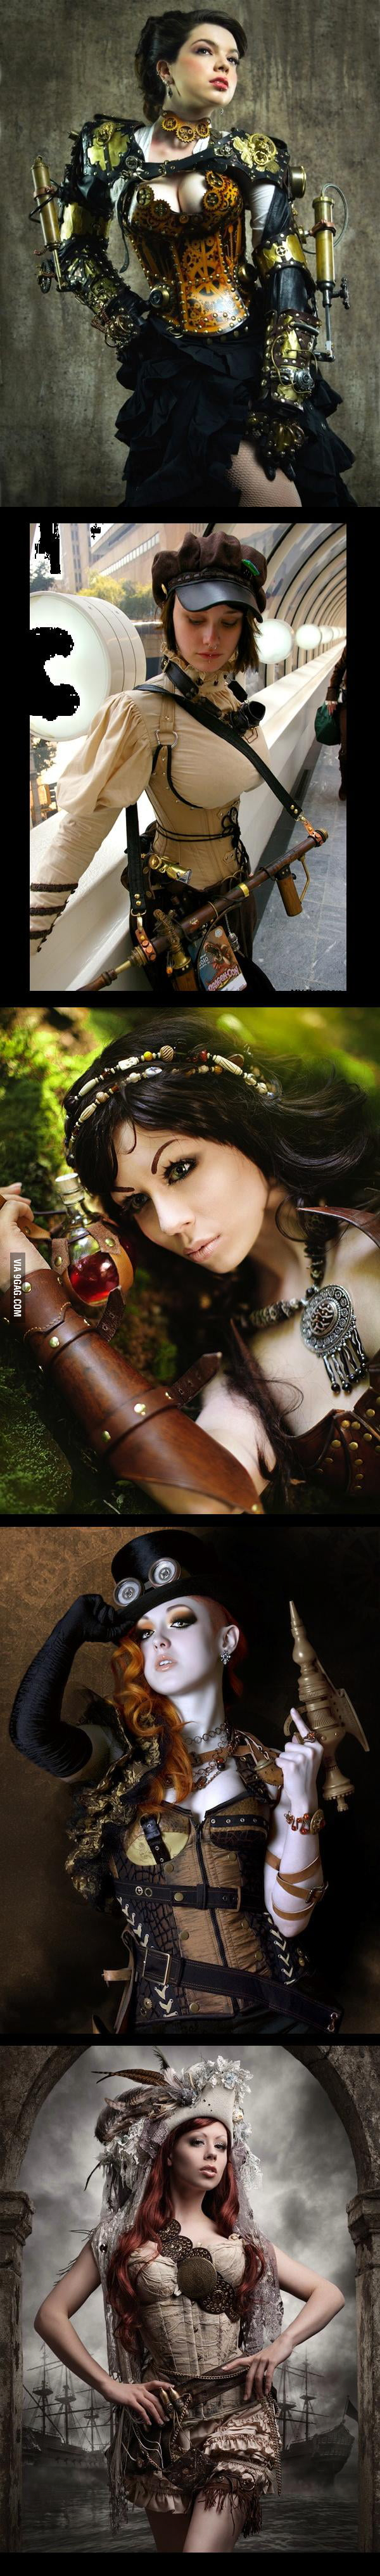 Steampunk Girls Cosplay